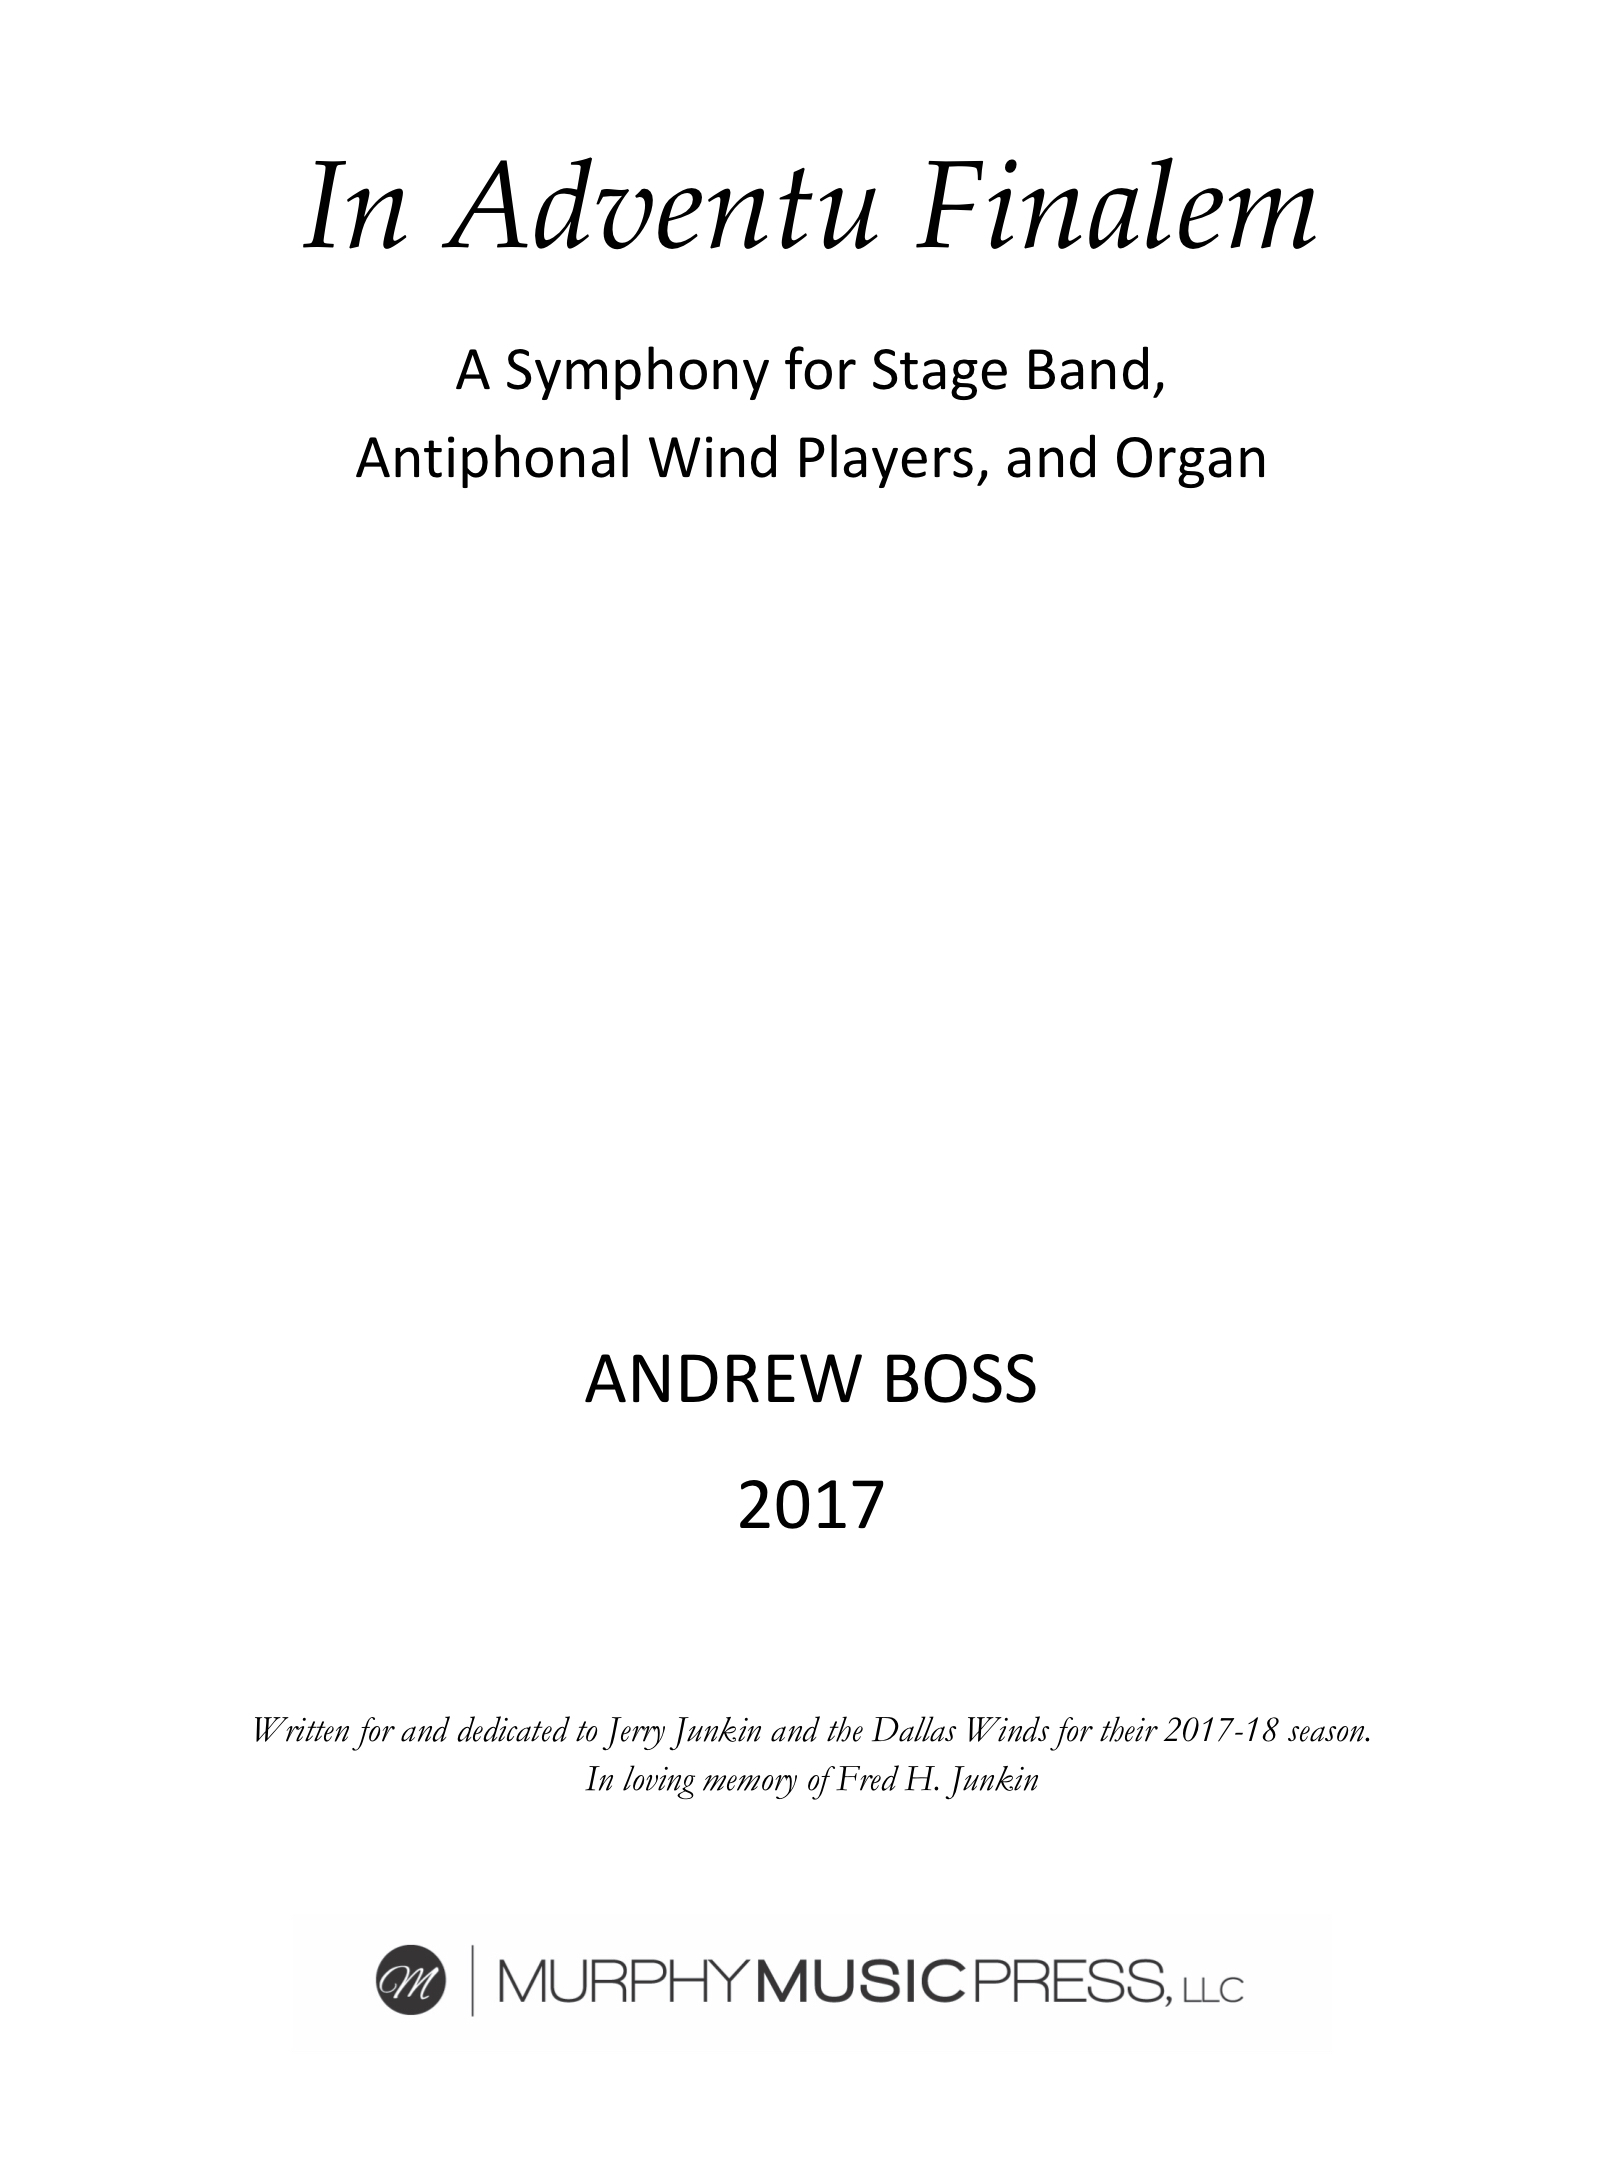 In Adventu Finalem (Second Movement Rental Only) by Andrew Boss